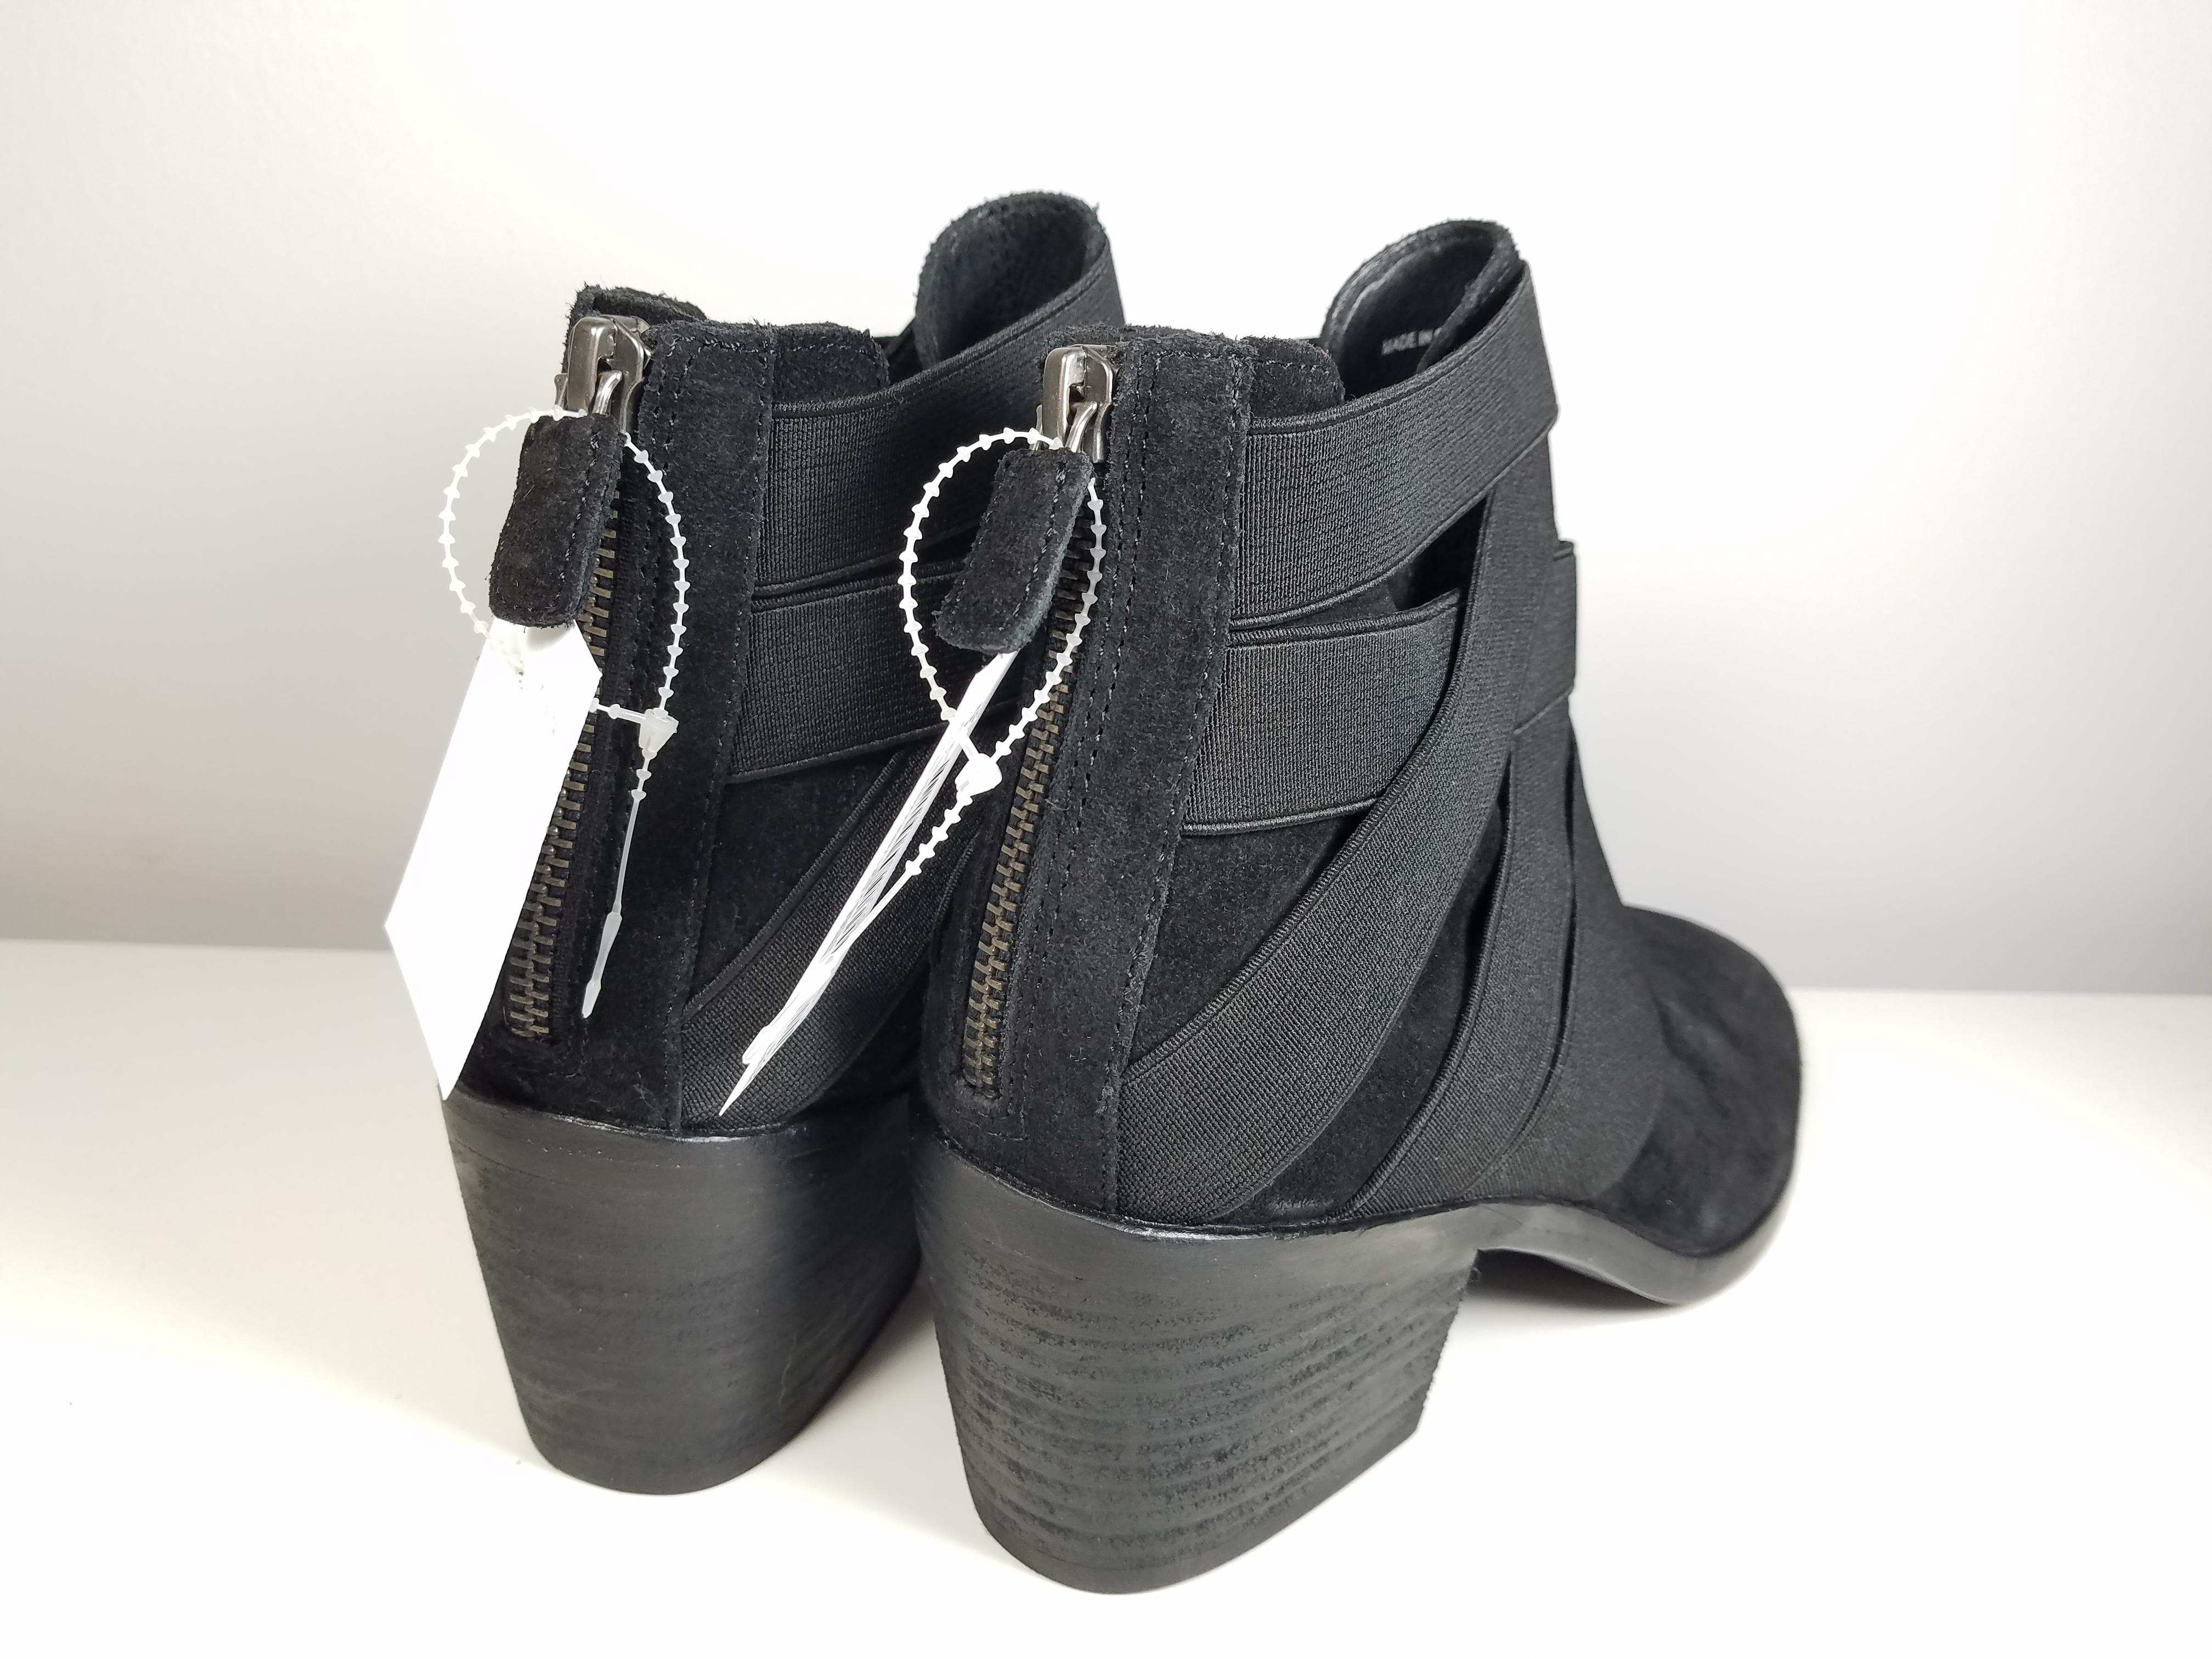 16e5ed605a8f ... Eileen Fisher Black Women s Suede Zip Stretch Belts Ankle Ankle Ankle  Boots Booties Size US ...